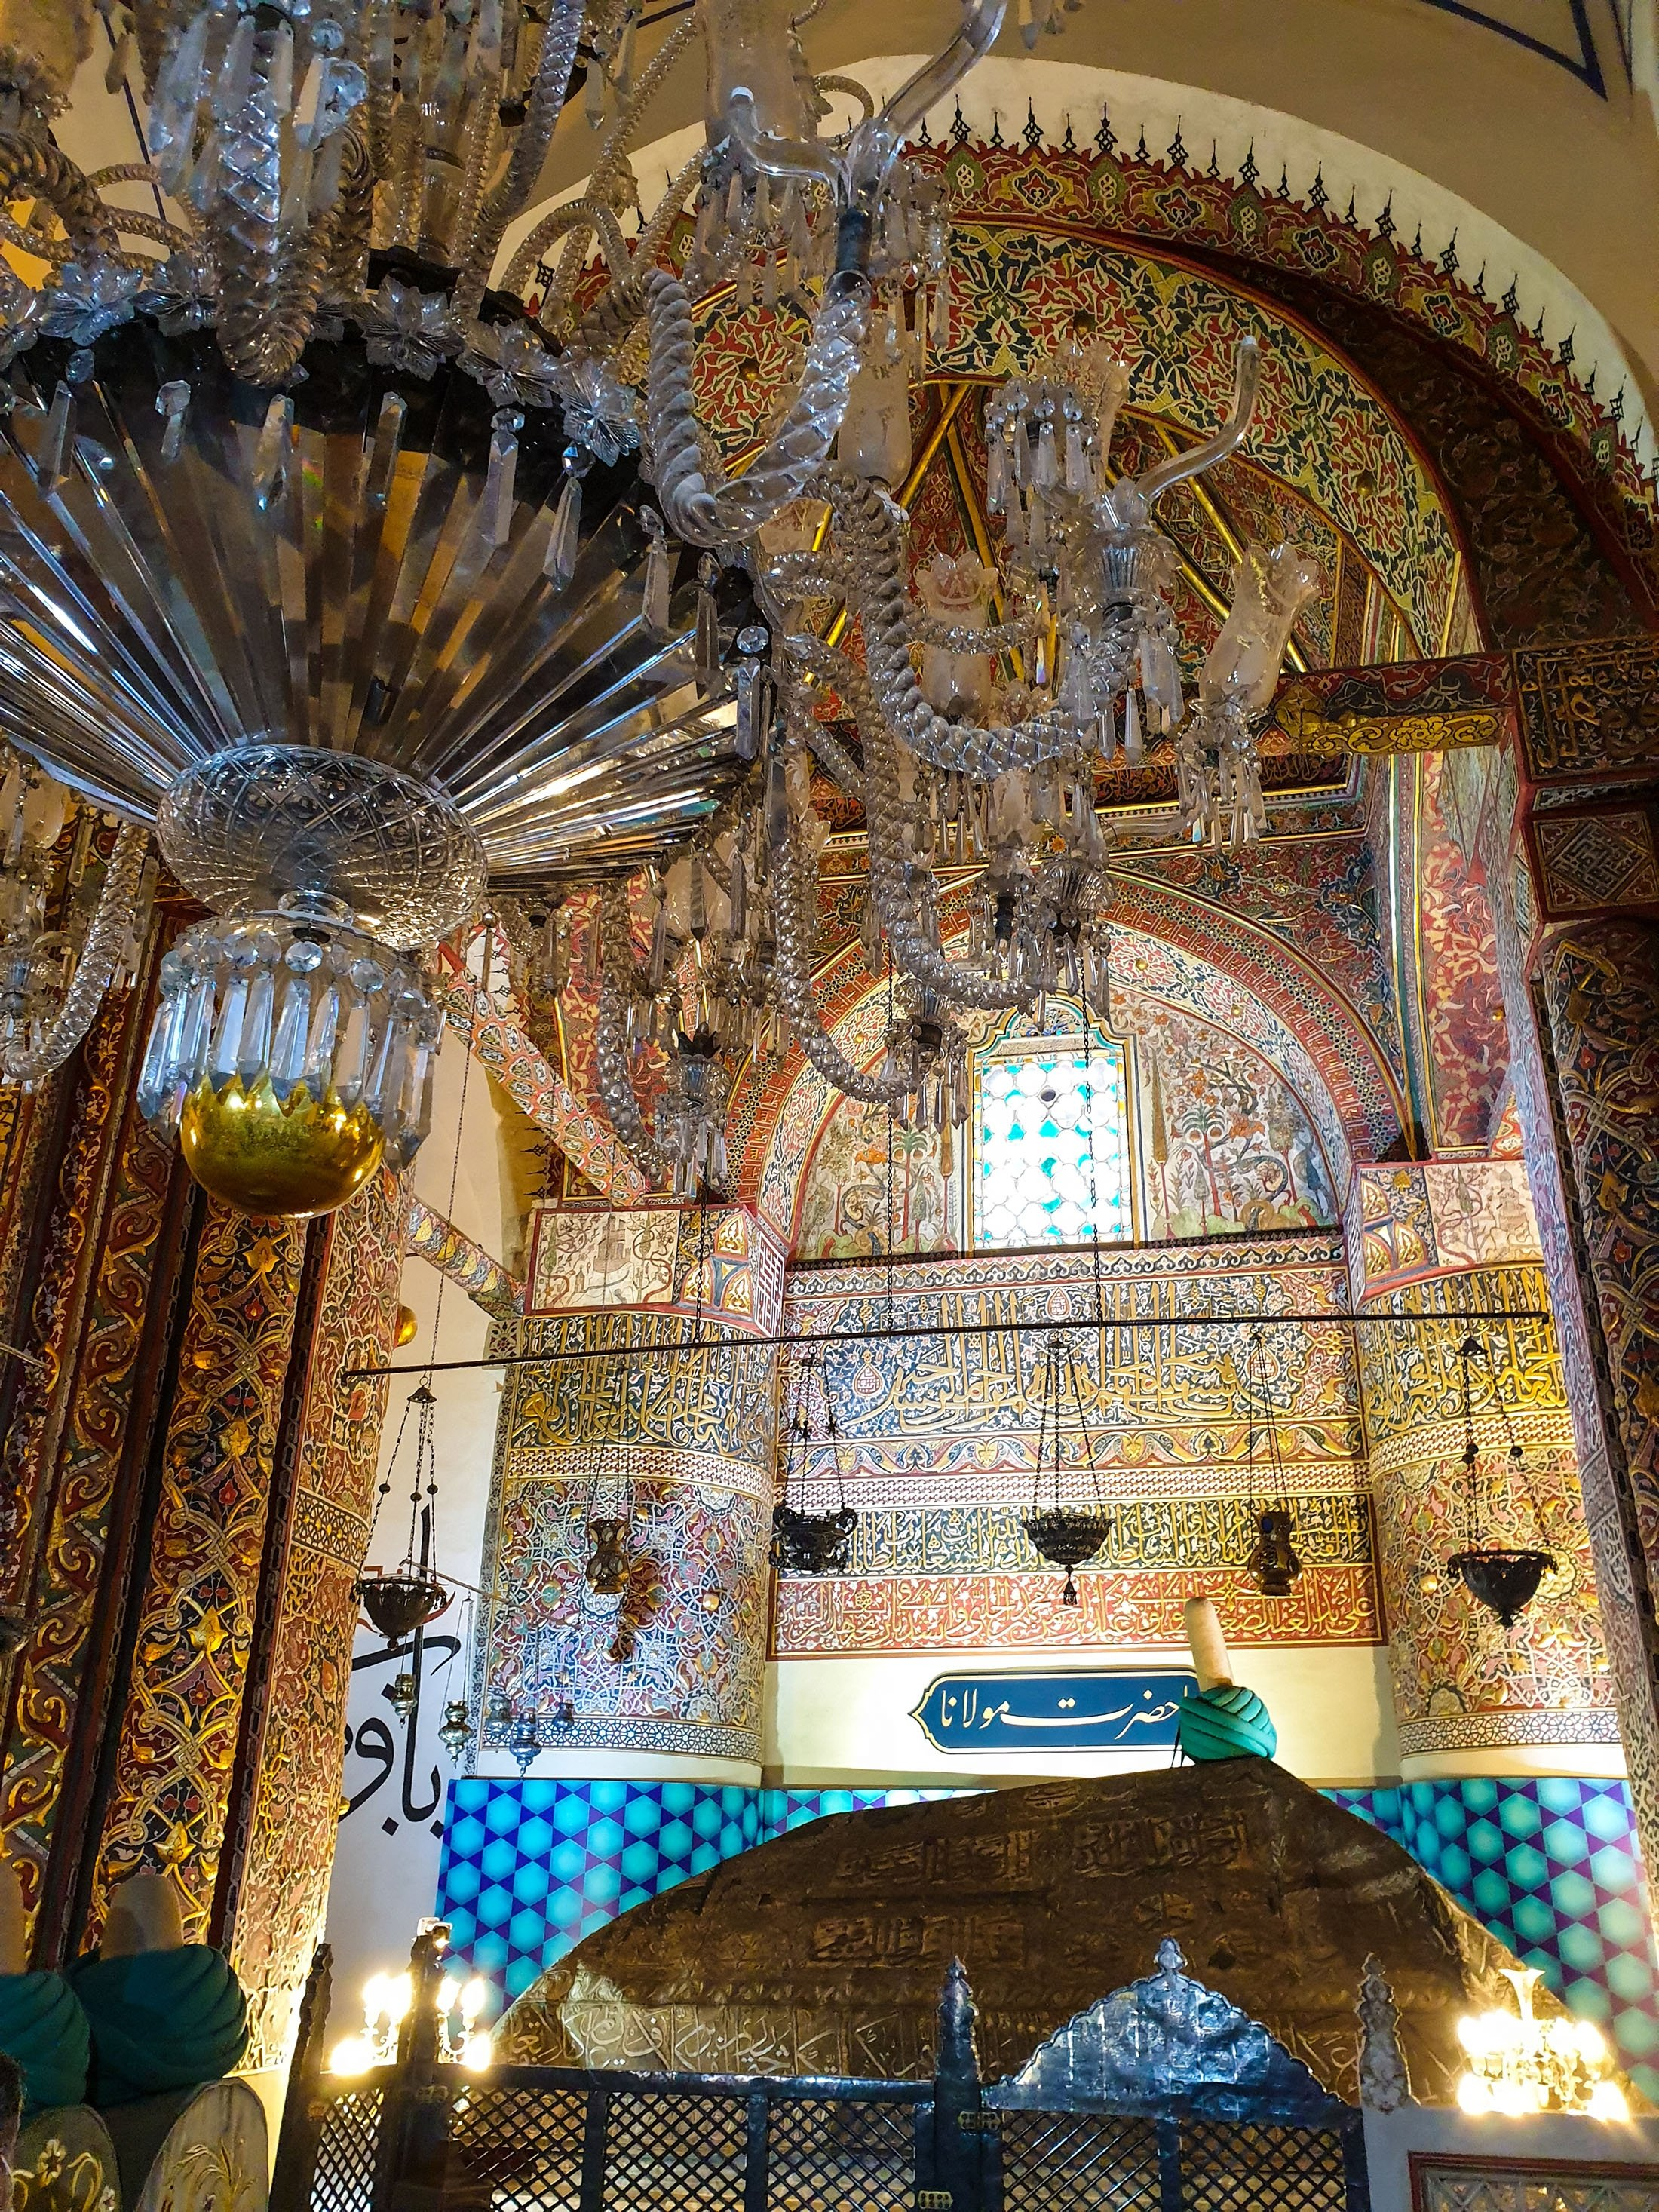 The tomb of Sufi philosopher Mevlana Jalaladdin Rumi. (Photo by Argun Konuk)